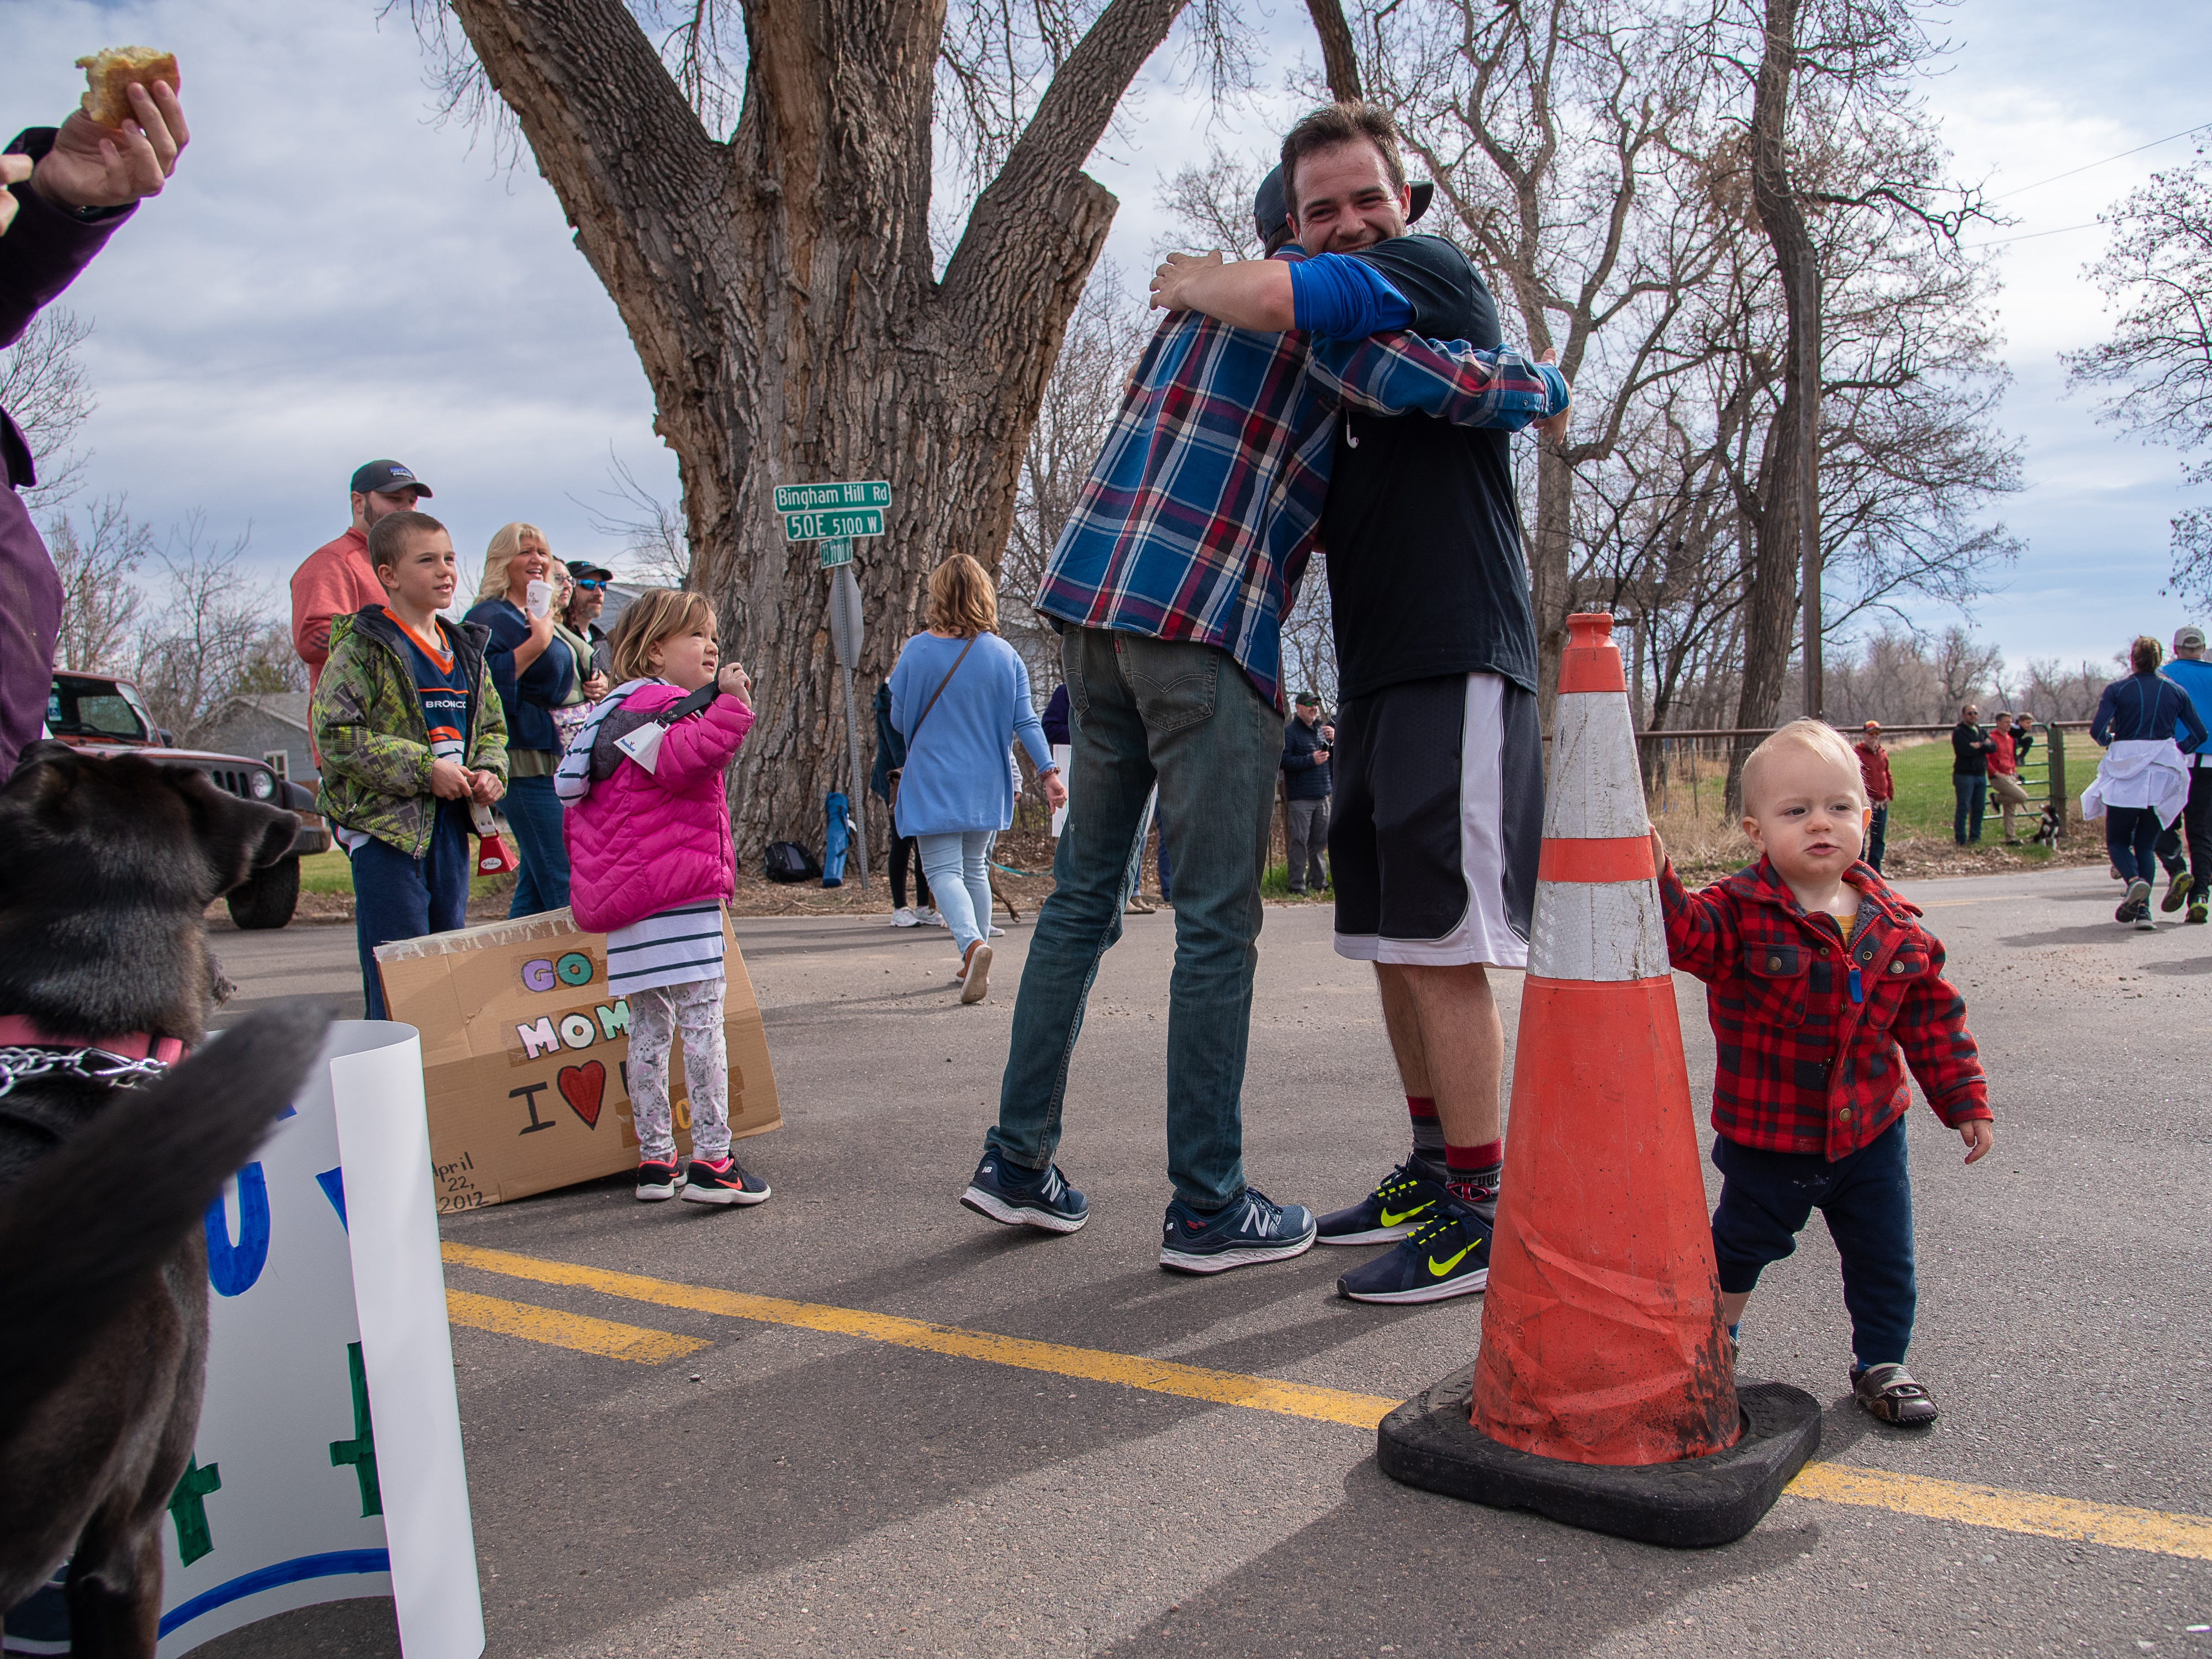 Jude Veliquette, 1, holds a safety cone and watches race participants near the corner of Bingham Hill Road during the Horsetooth Half Marathon on Sunday, April 14, 2019, in Fort Collins, Colo.